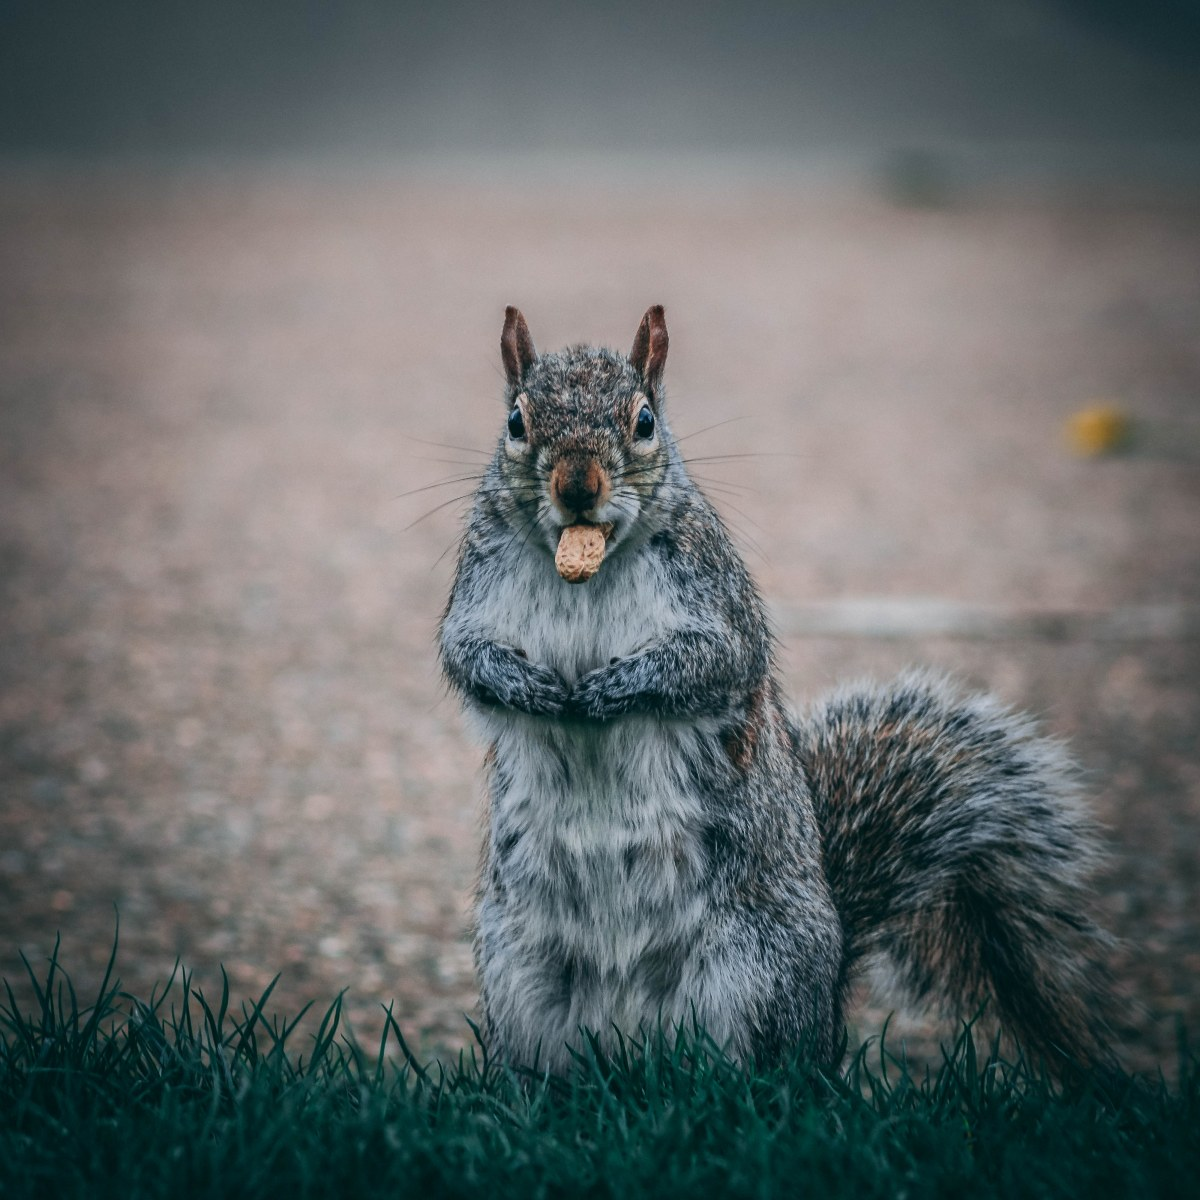 Hyde Park has so many squirrels which will come up to as they are really used to the people and just curious